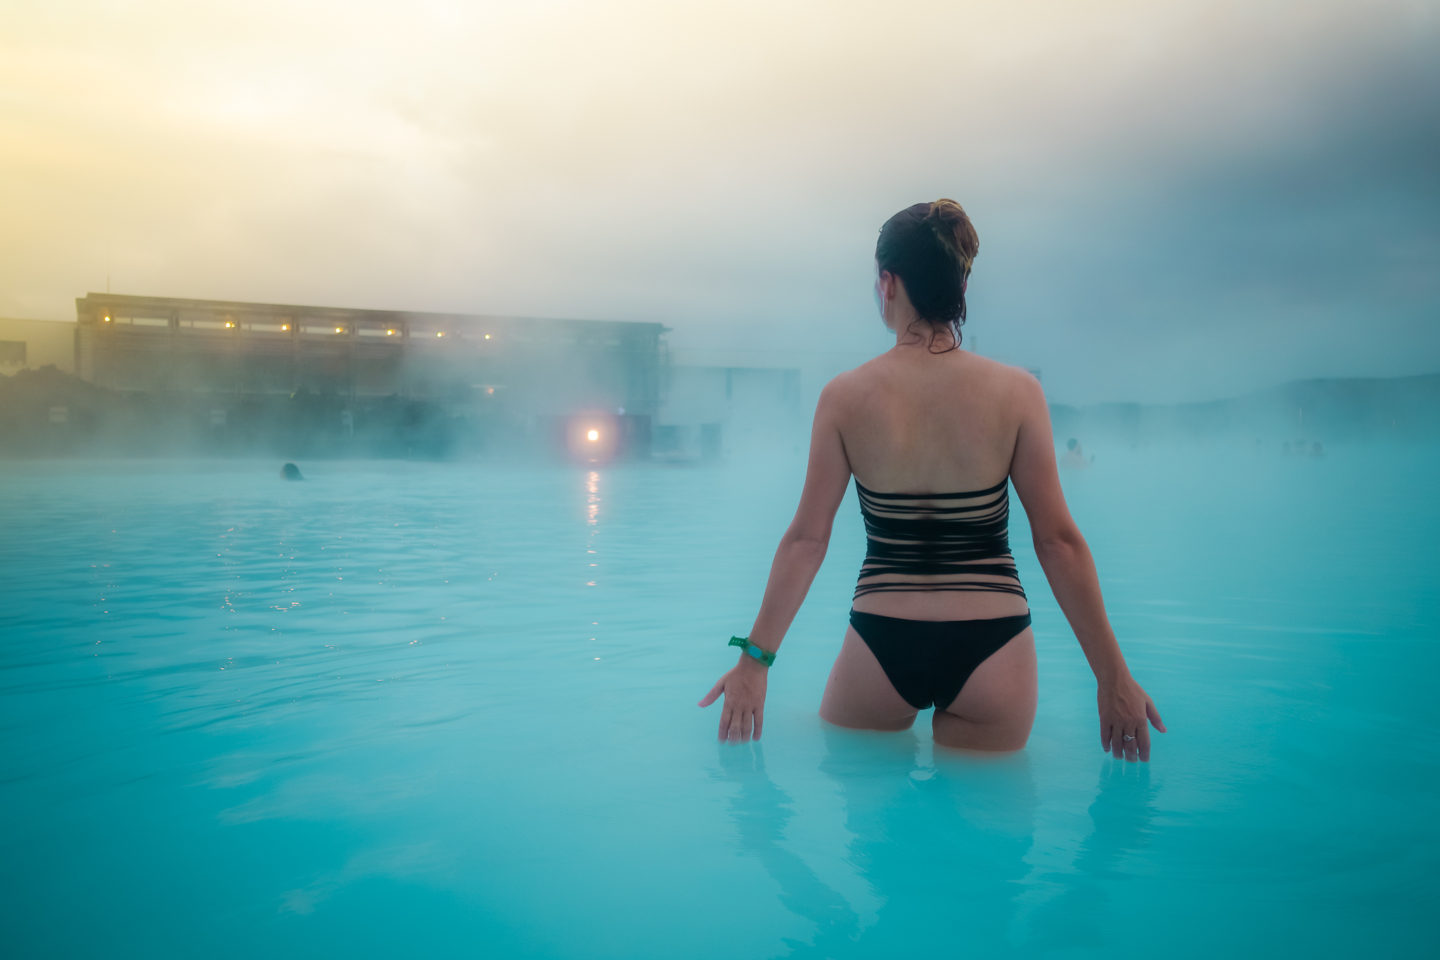 Blue Lagoon: A winter visit to Iceland's most famous attraction